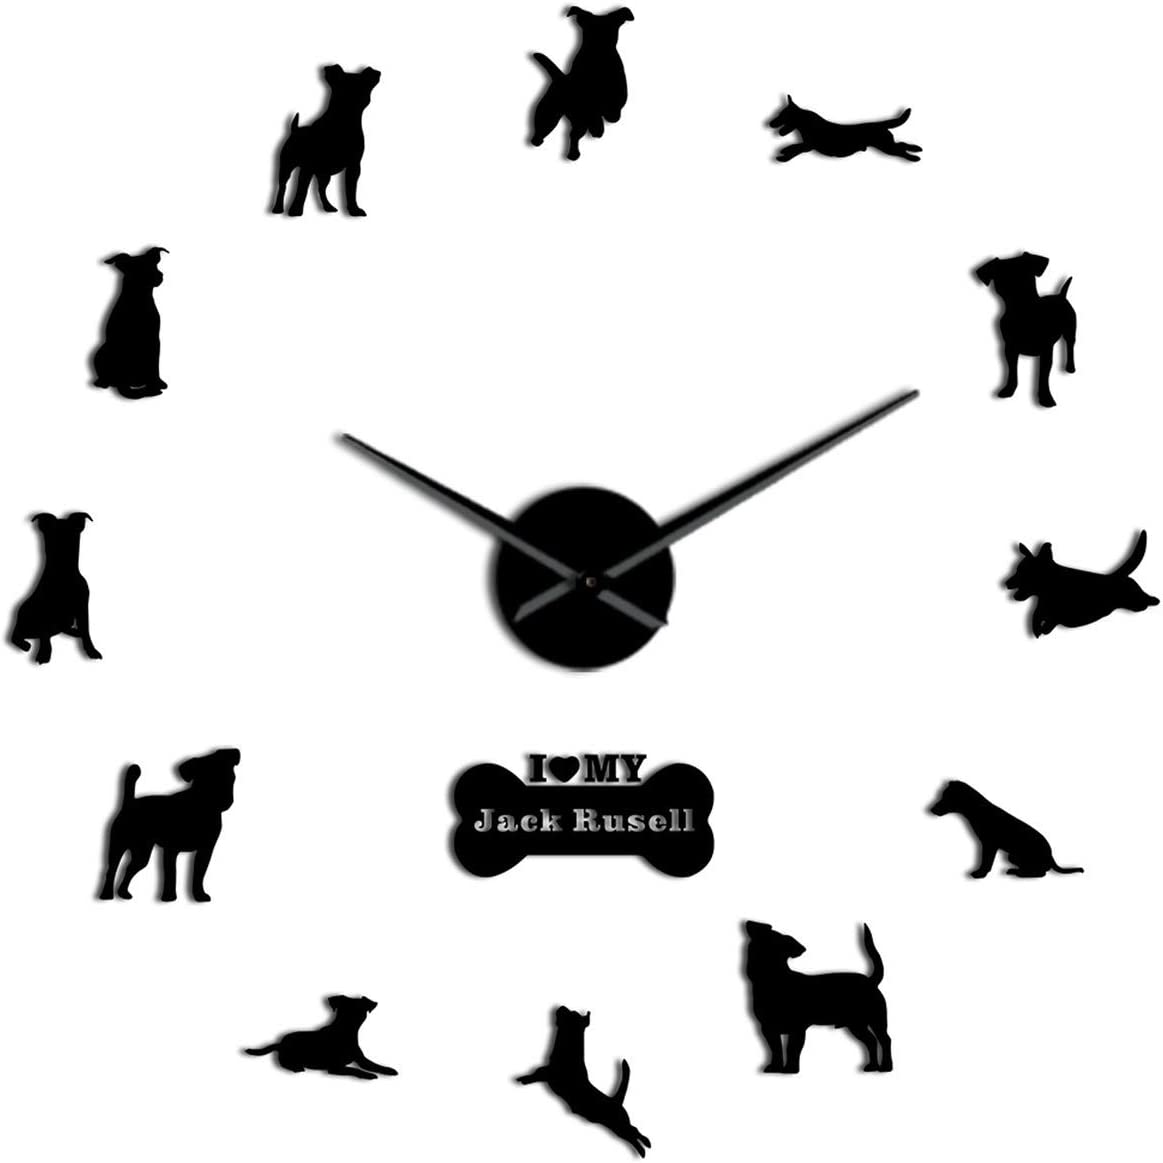 Amazon Com Fyttq Clocks Battery Operated Fox Hunting Dog Jack Russell Terrier Large Size Contemporary Wall Clock Small Terrier Dog Breed Gift Mirror Effect Wall Art Black 37 Inch Home Kitchen